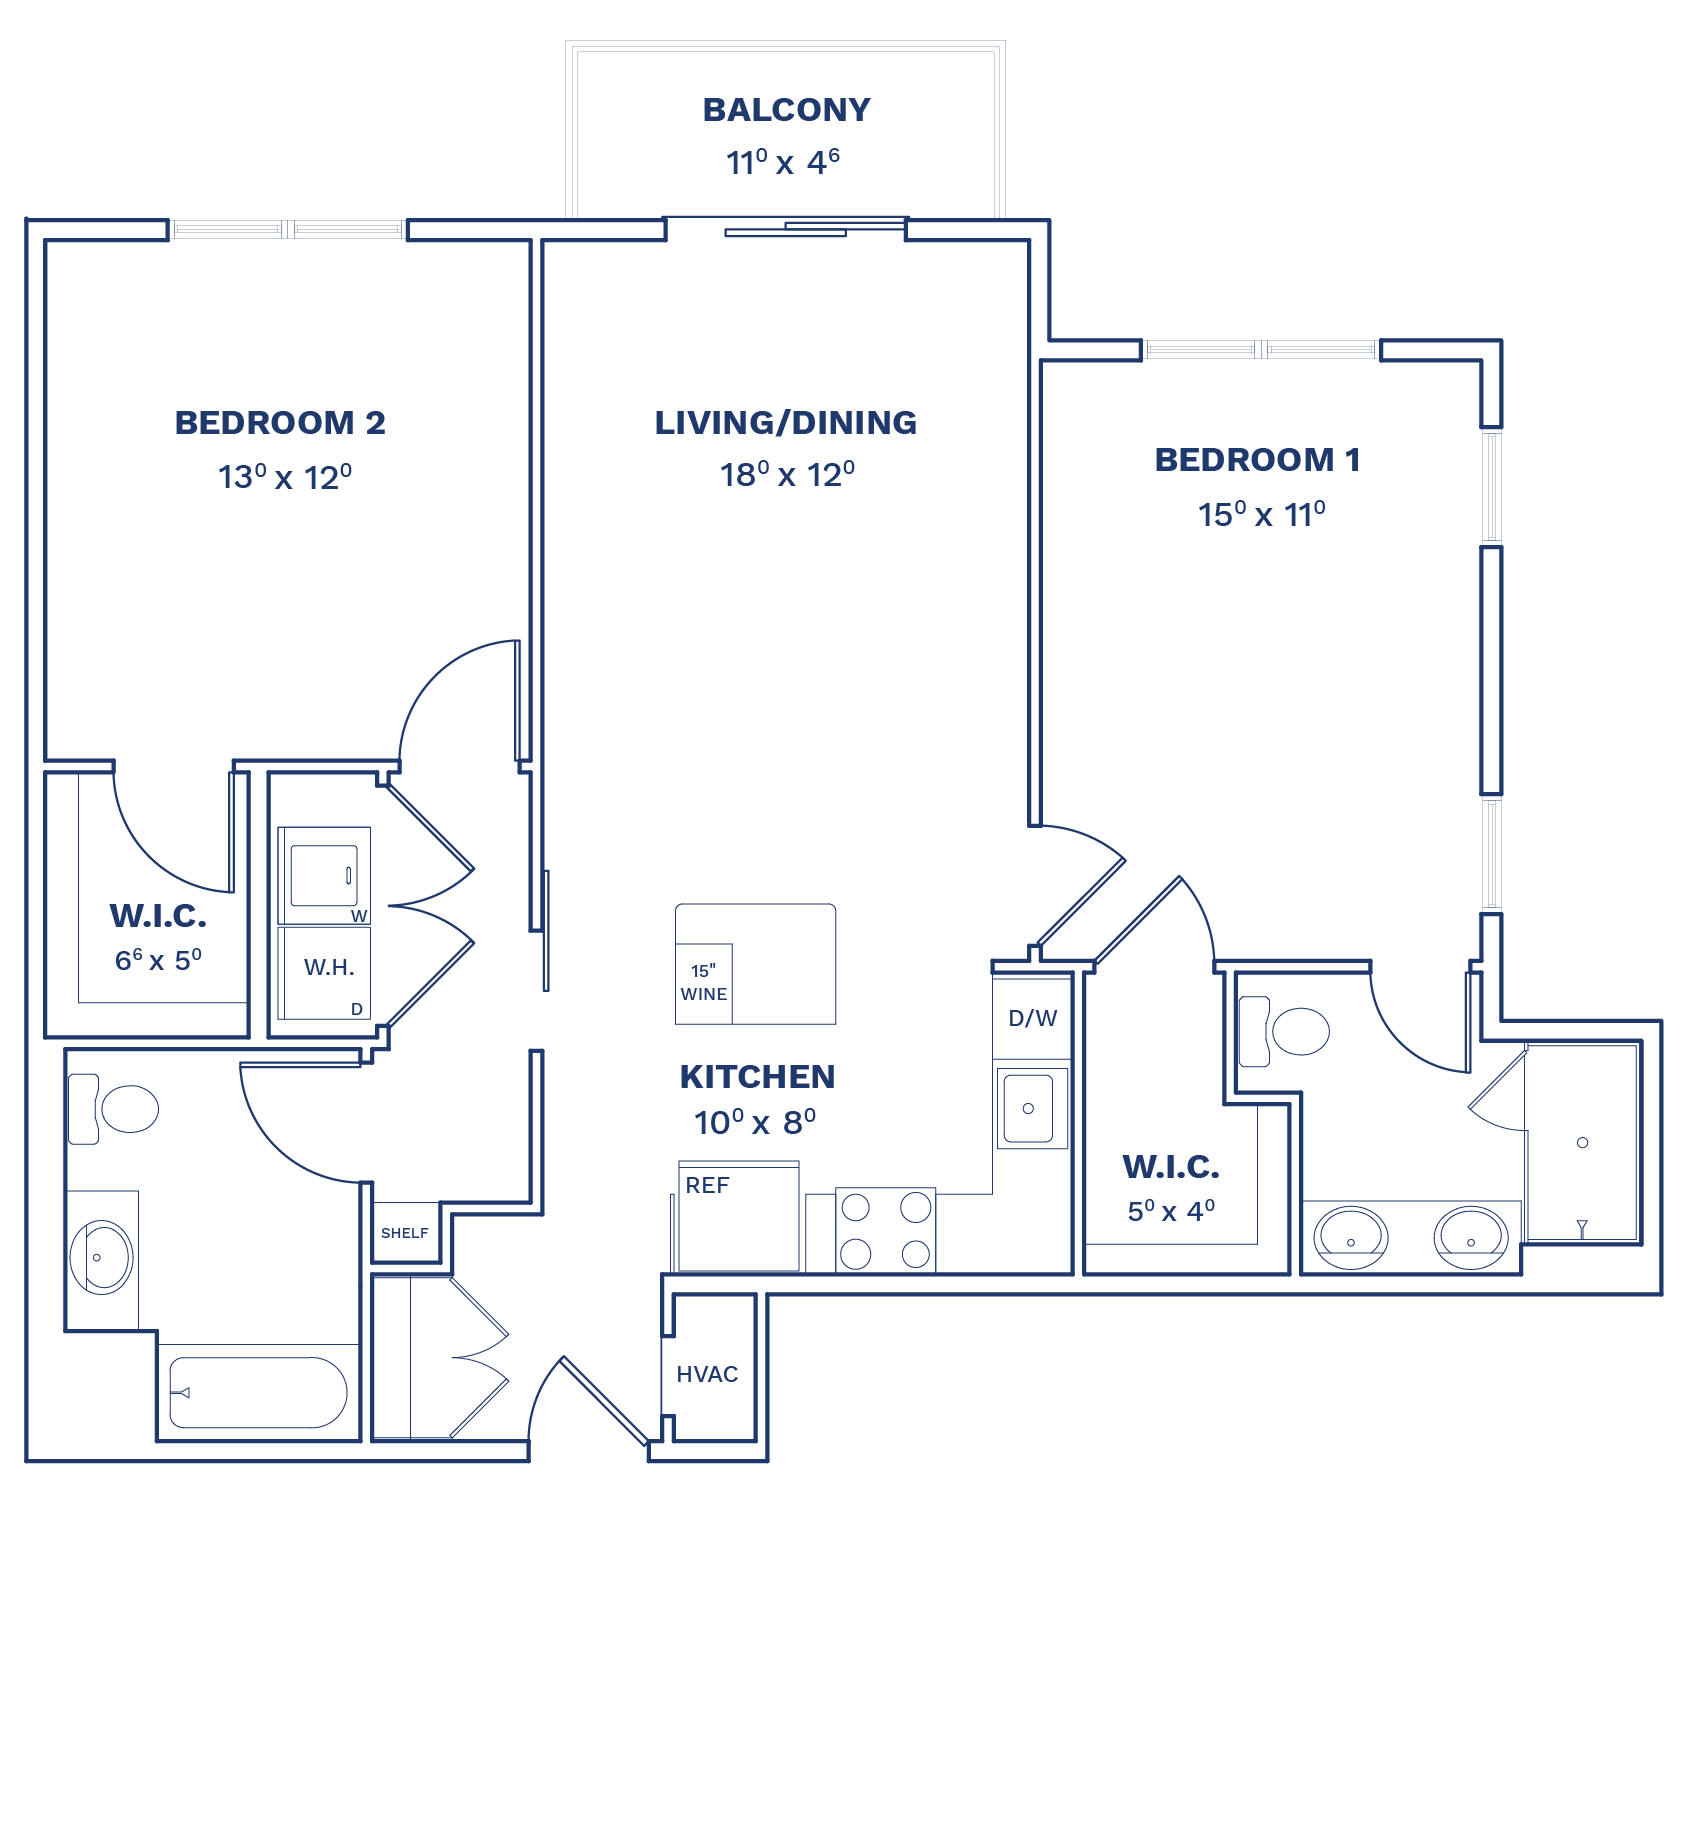 Floorplan of Unit B1